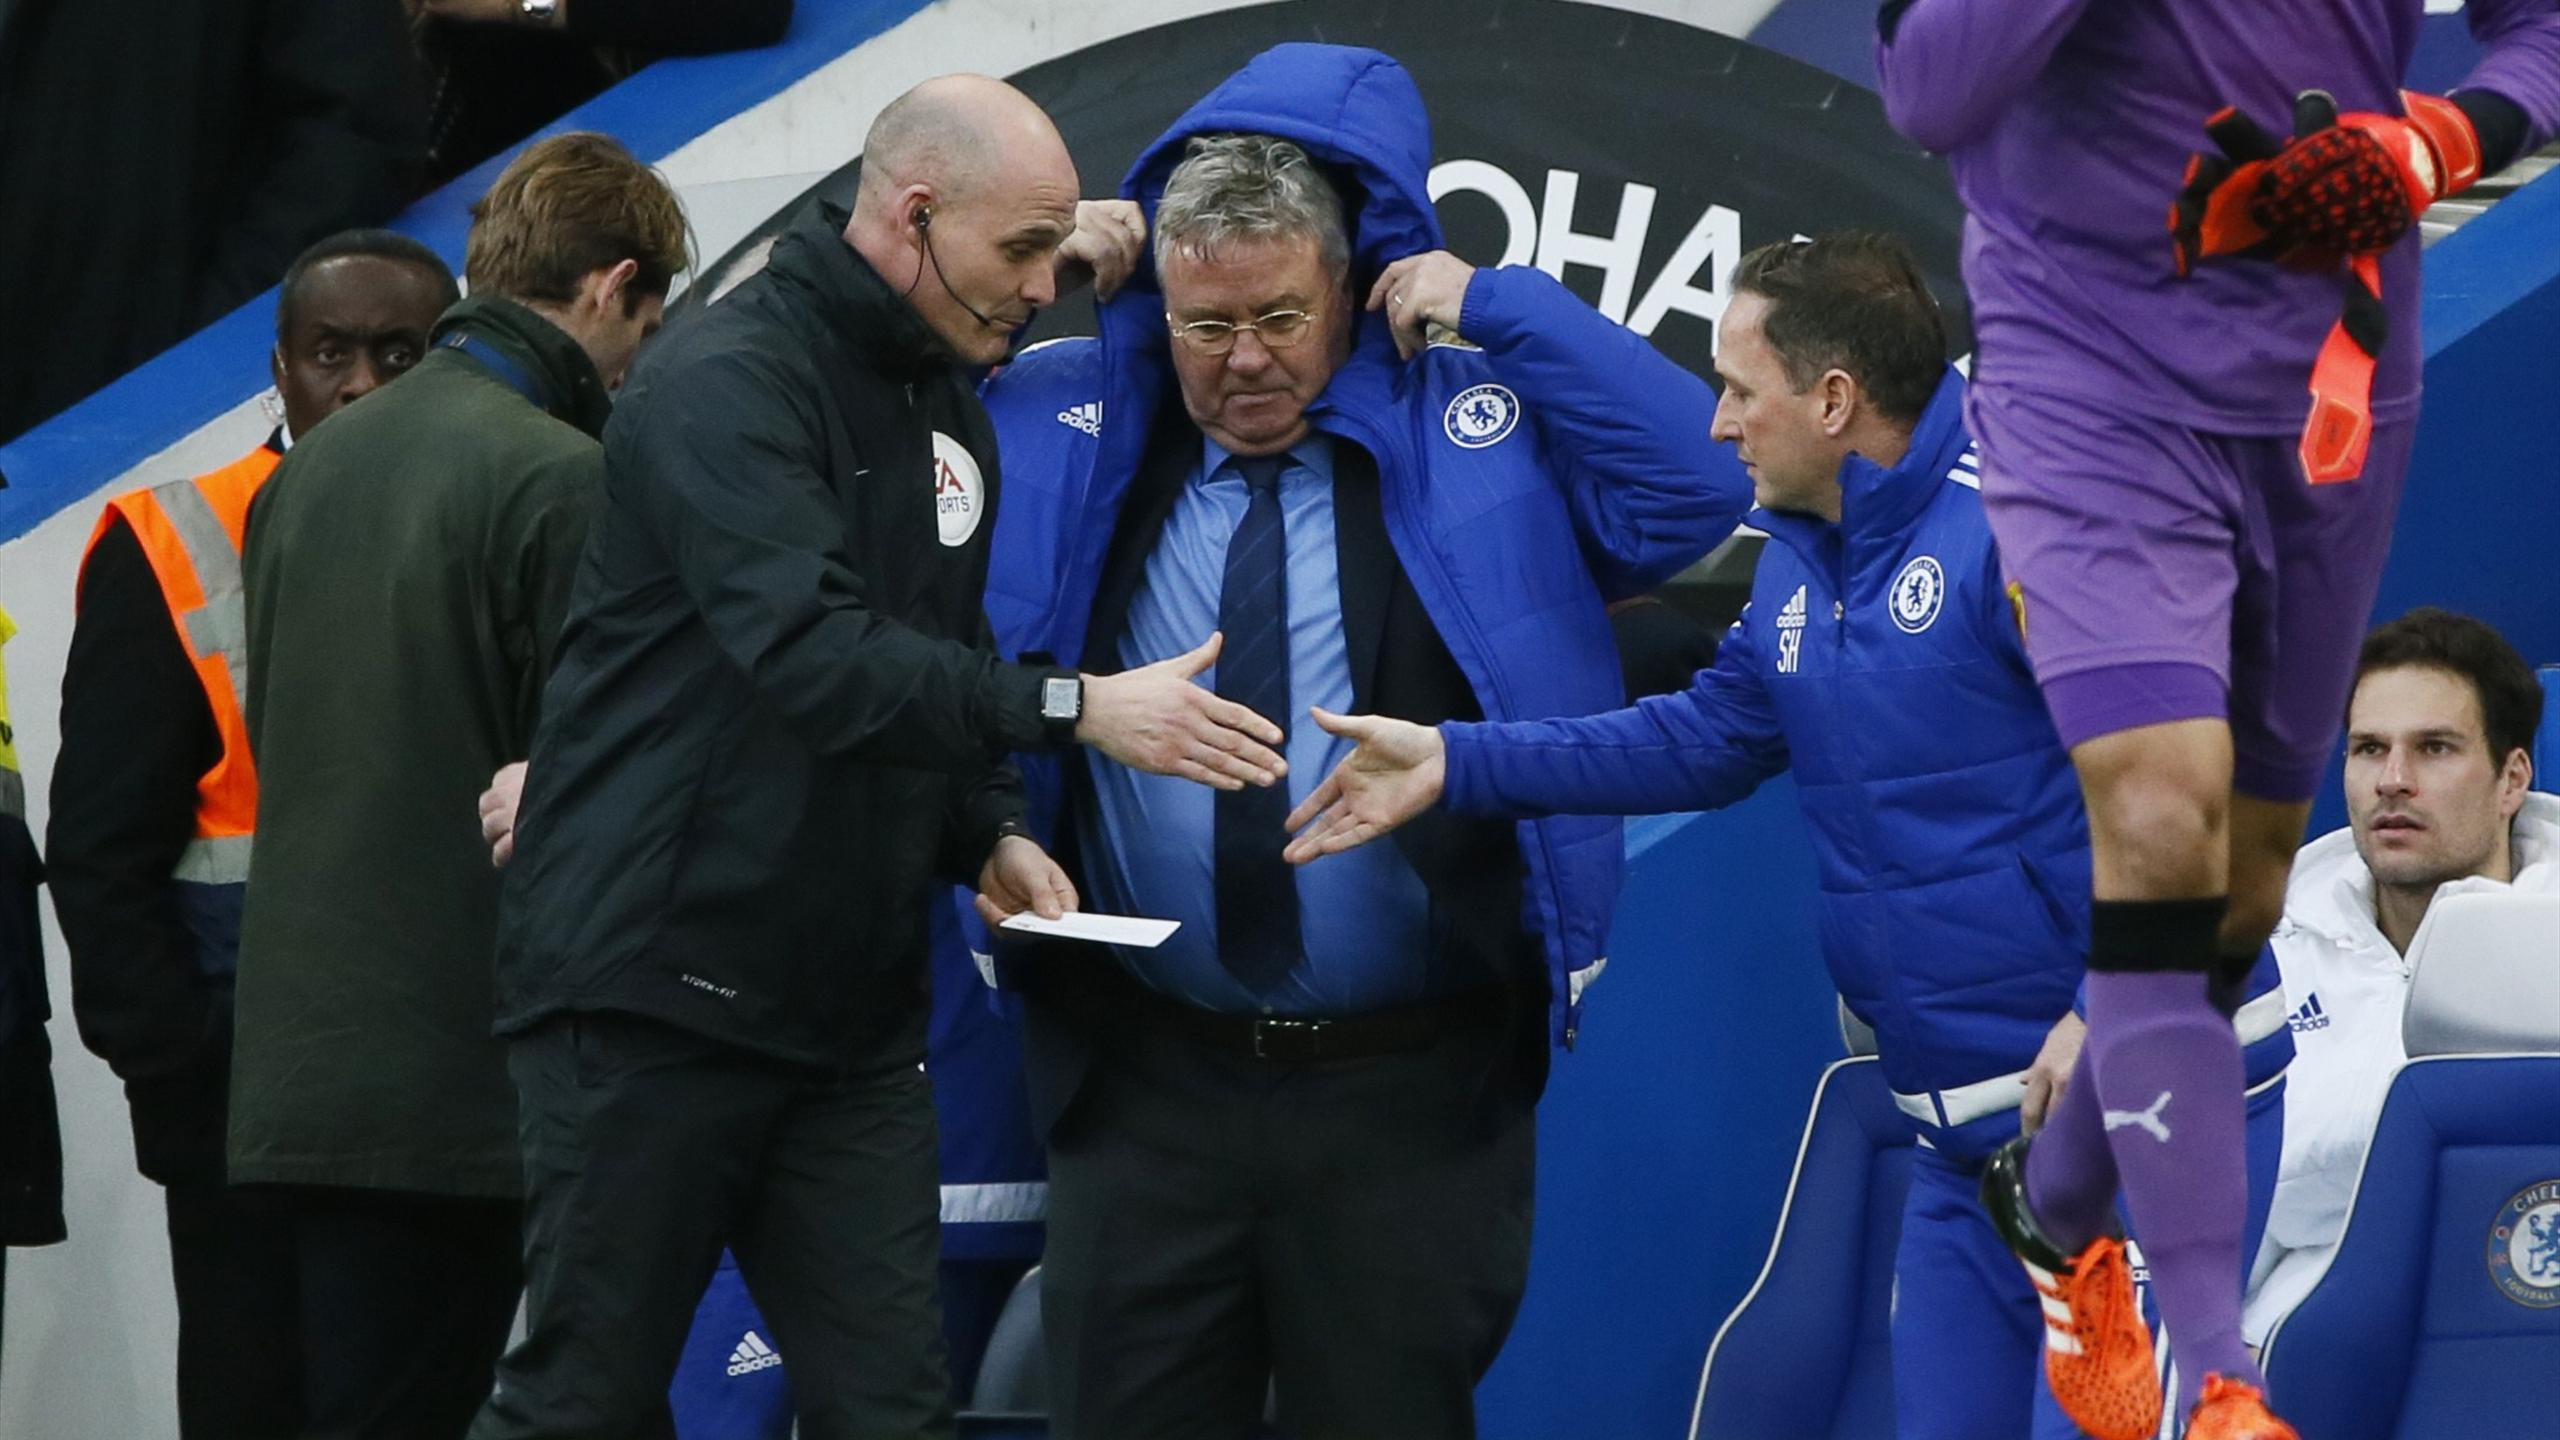 Chelsea manager Guus Hiddink and assistant manager Steve Holland before the match